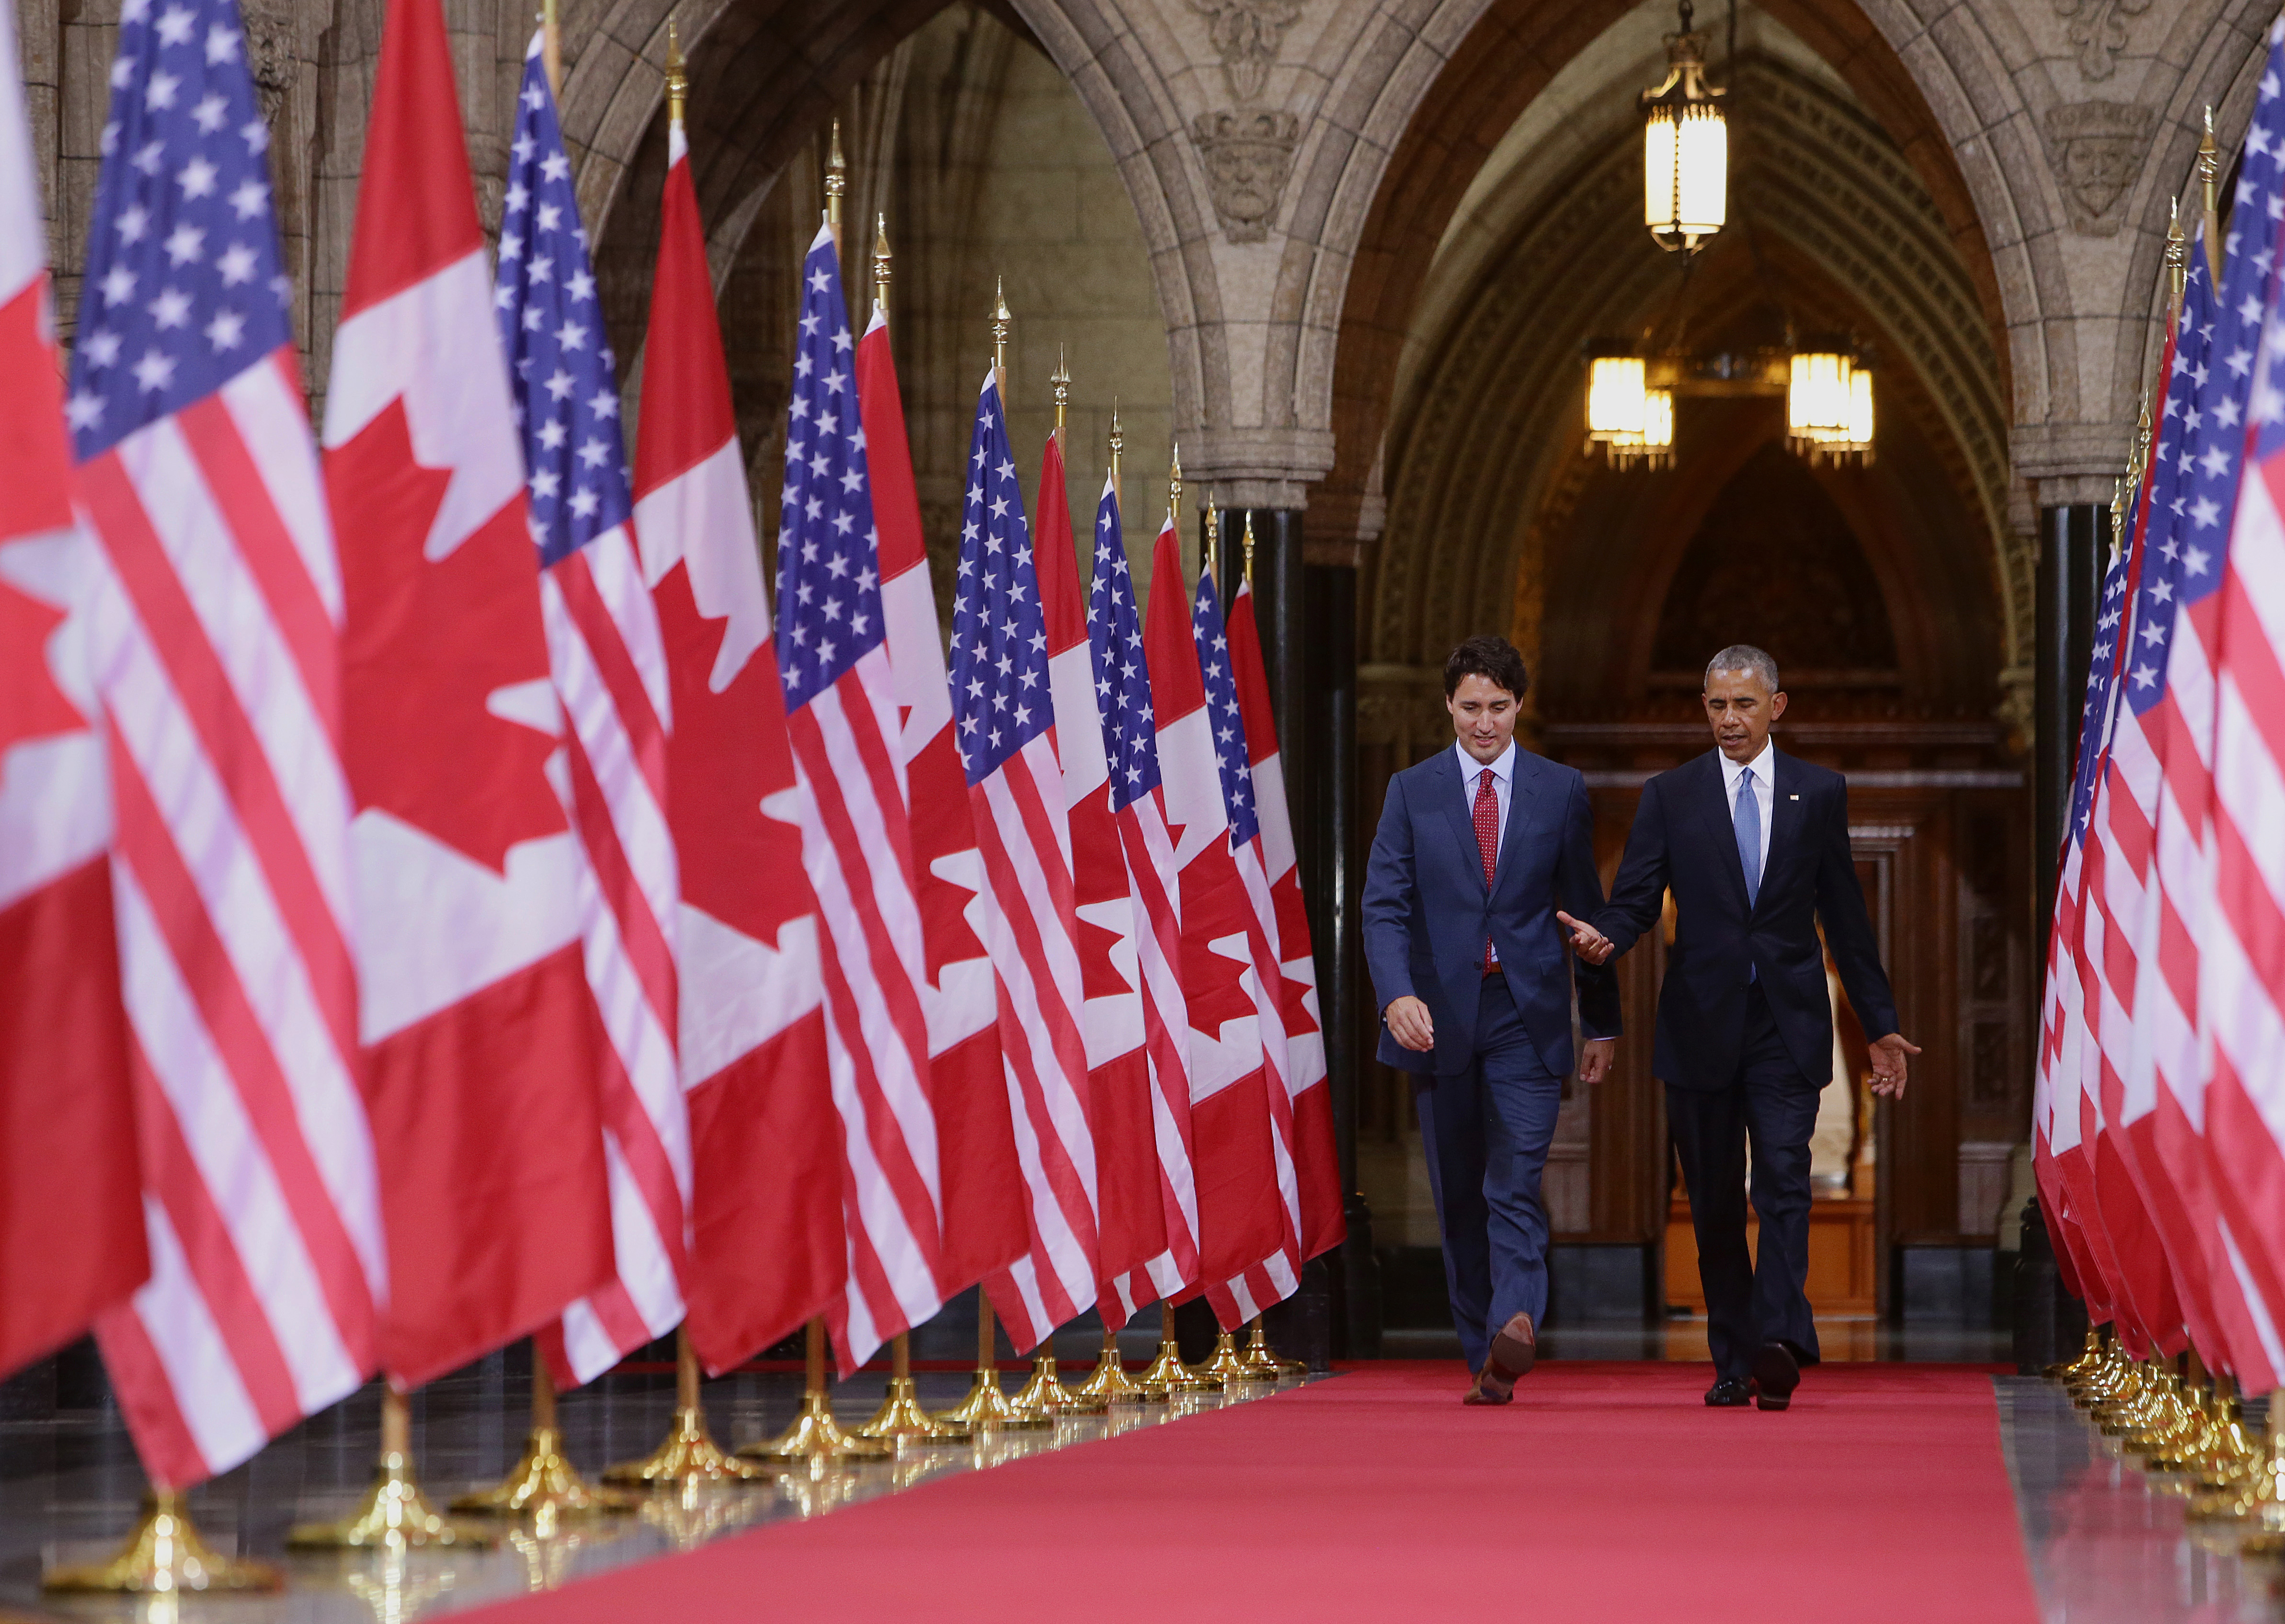 Justin Trudeau, Canada's prime minister, left, and U.S. President Barack Obama, speak as they walk inside the Hall of Honour inside Parliament Hill in Ottawa, Ontario, Canada, on Wednesday, June 29, 2016. Bloomberg—Bloomberg via Getty Images